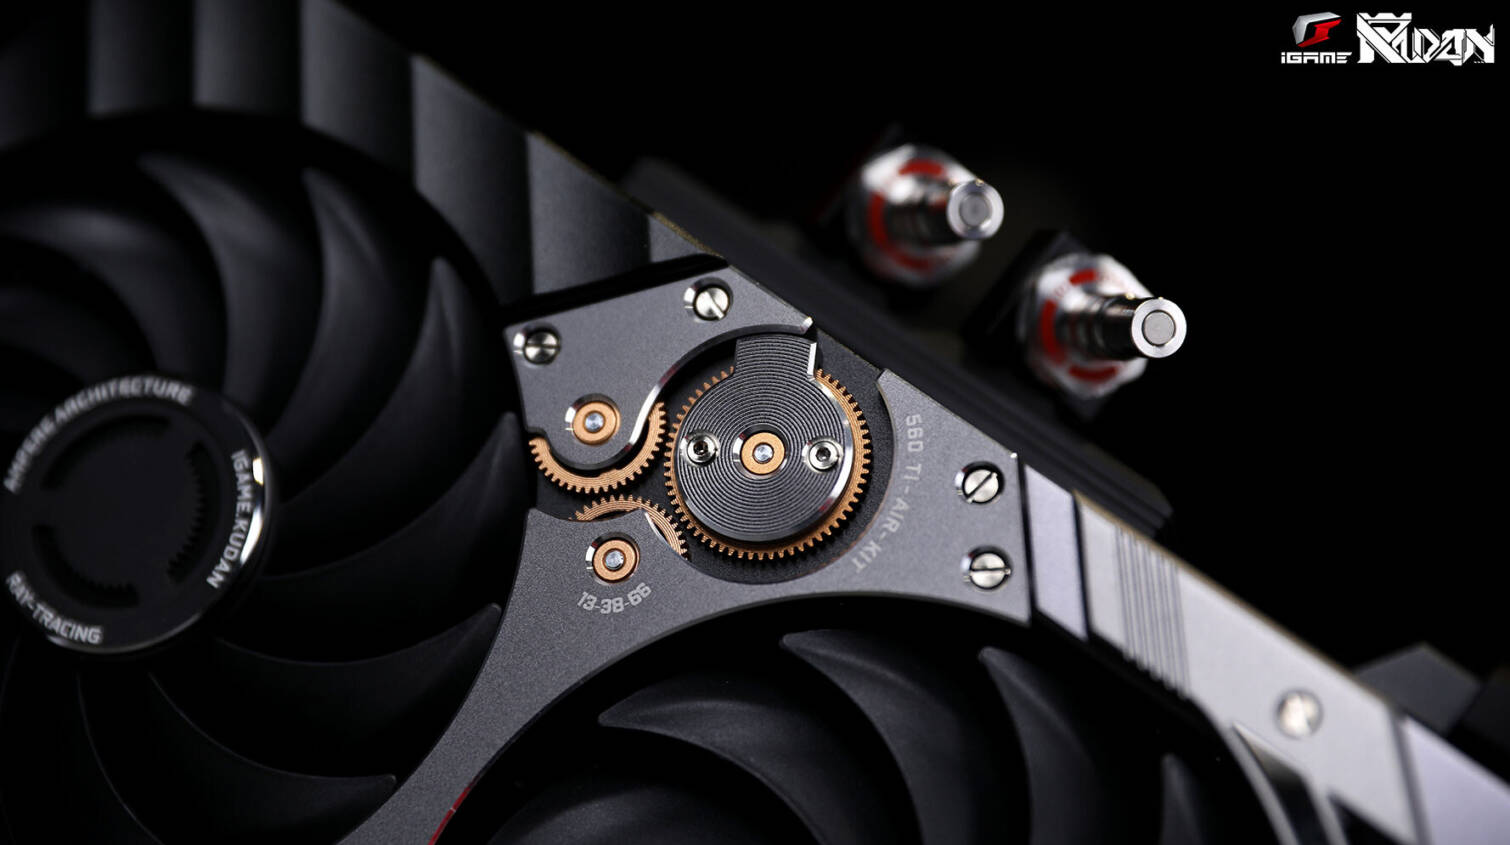 (PR) COLORFUL Launches Limited Edition GeForce RTX 3090 KUDAN Graphics Card